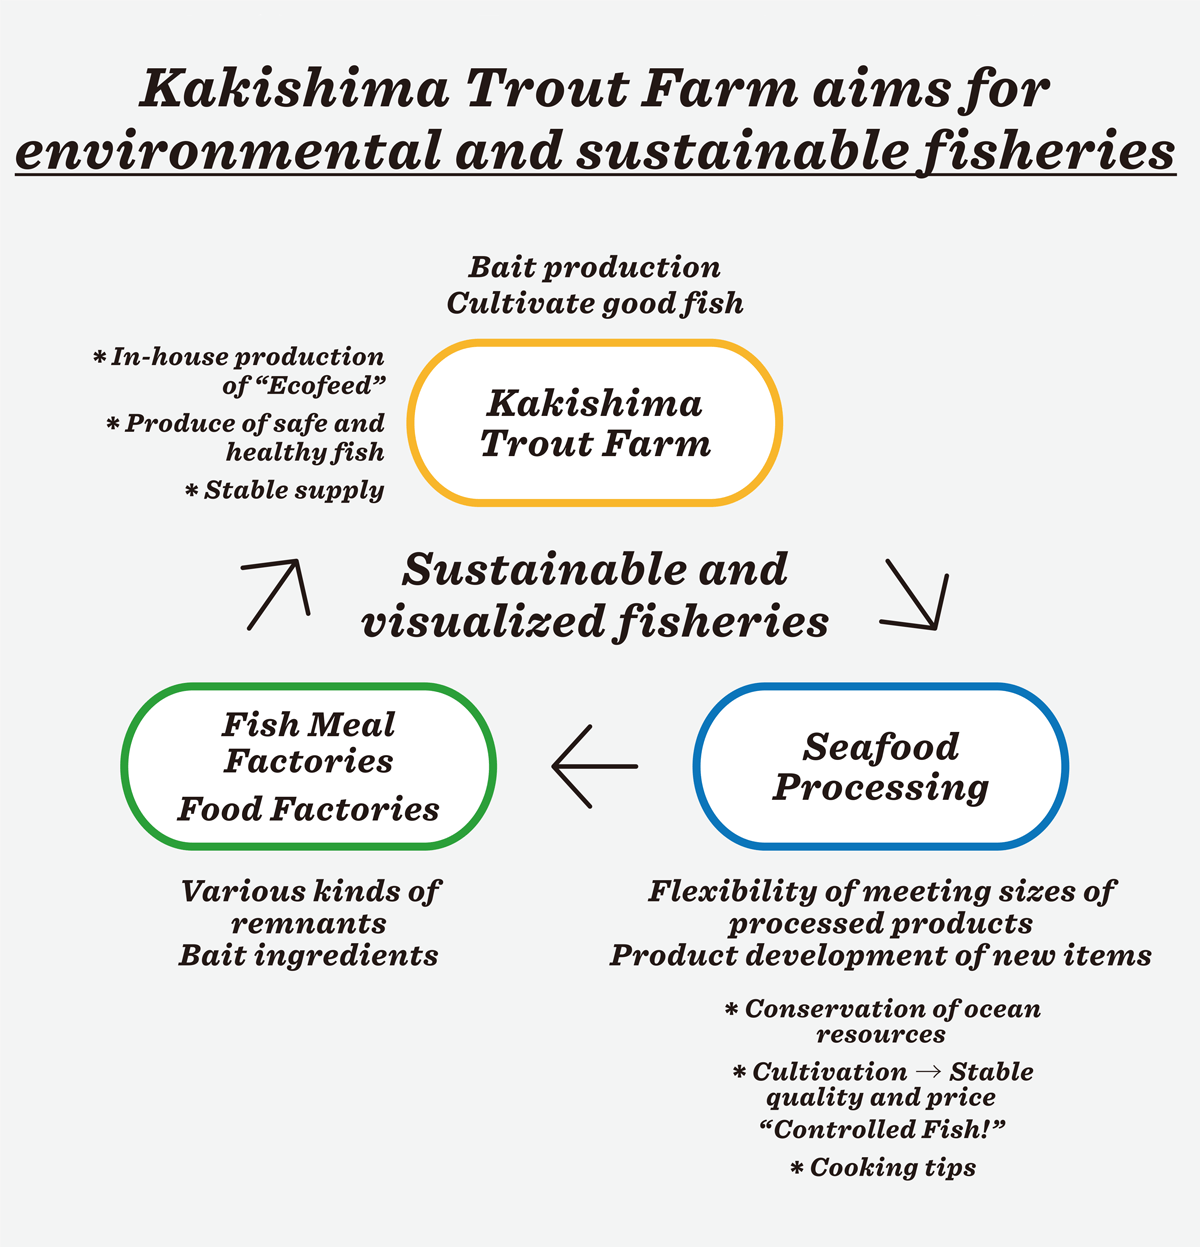 Kakishima Trout Farm aims for environmental and sustainable fisheries